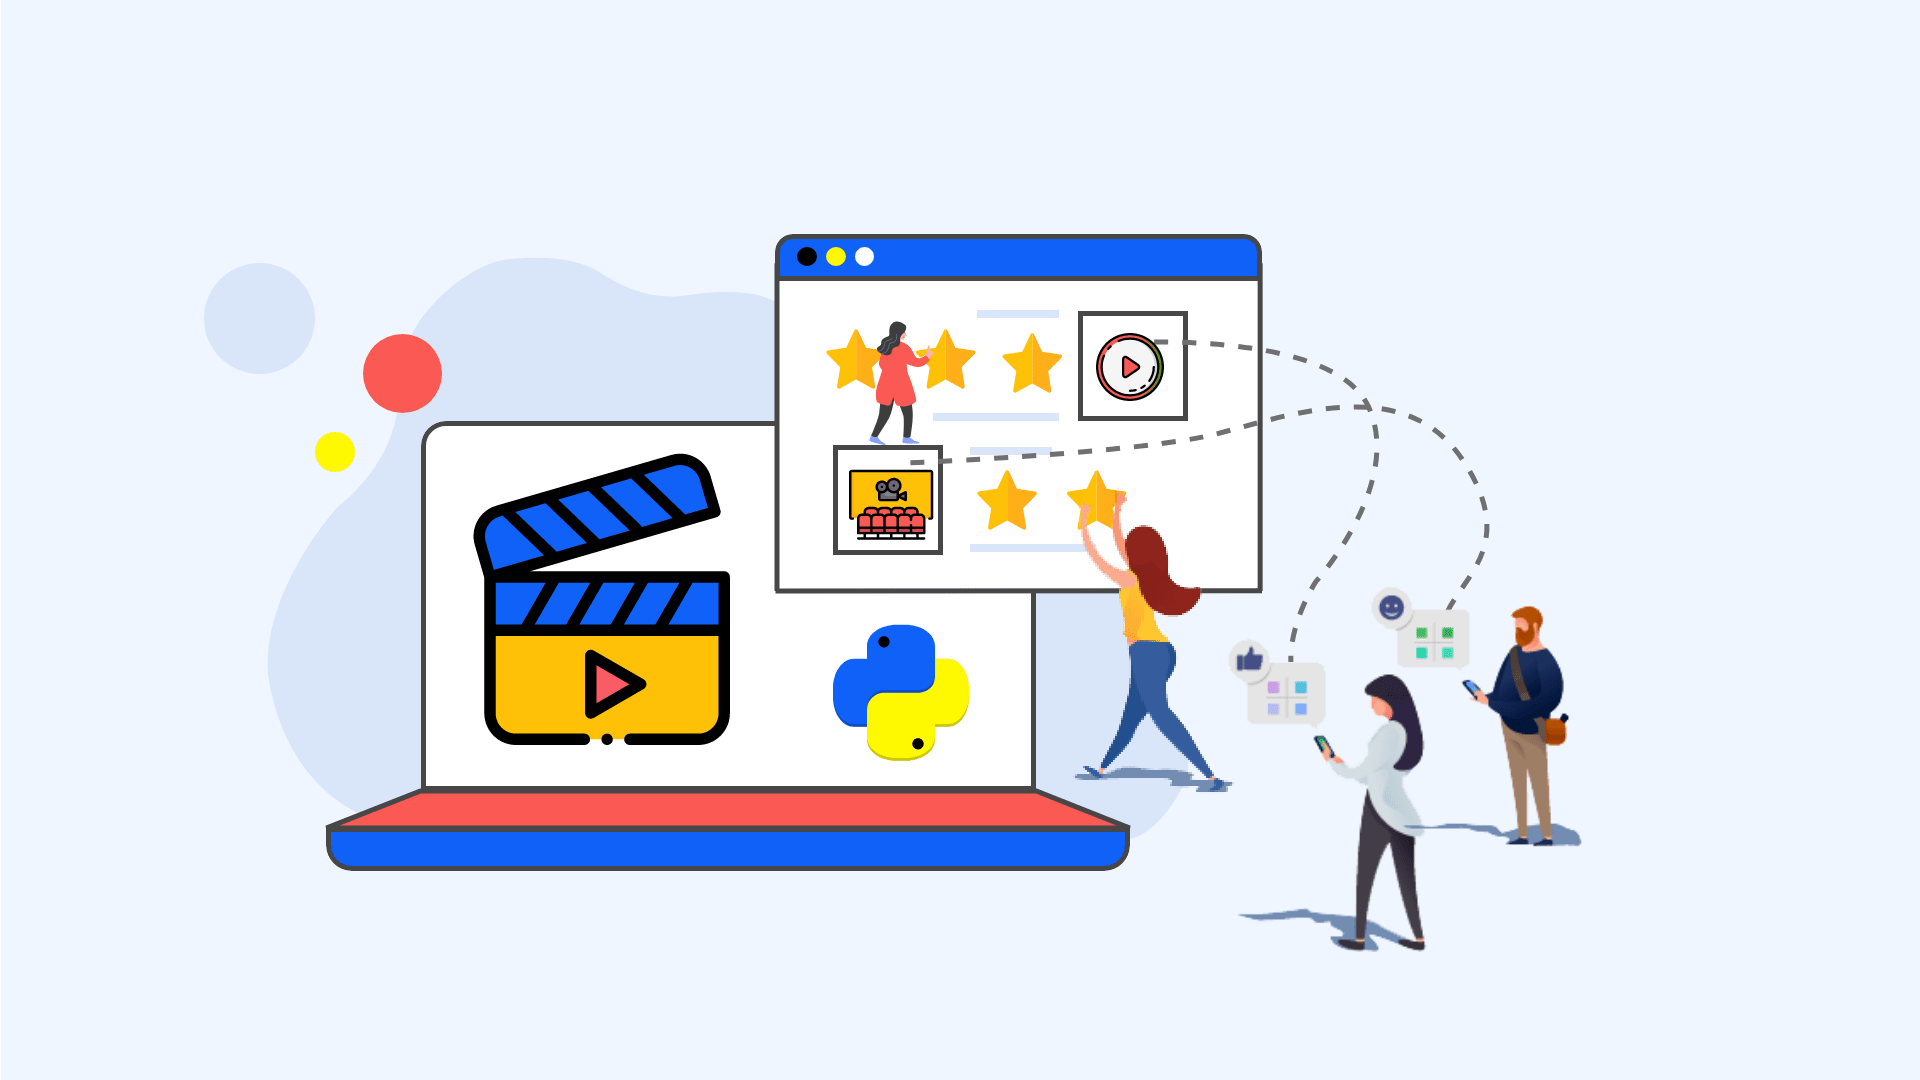 Learn to build movie recommendation system in Python